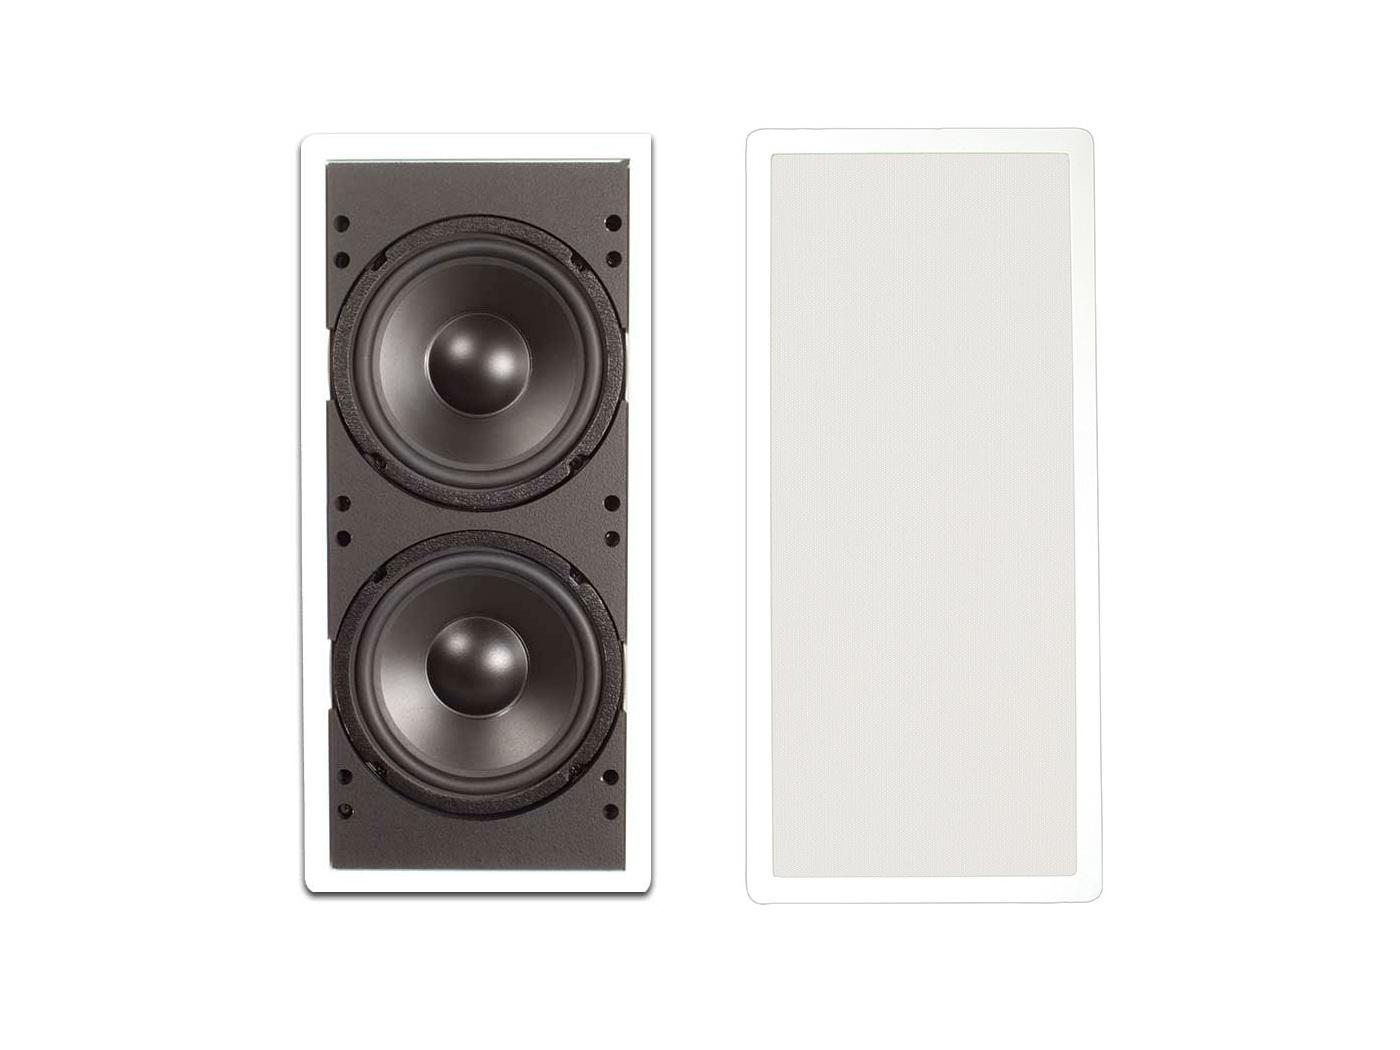 Soliddrive IW200-A KIT Dual 8-in In-Wall Subwoofer with Sealed Enclosure/Amplifier